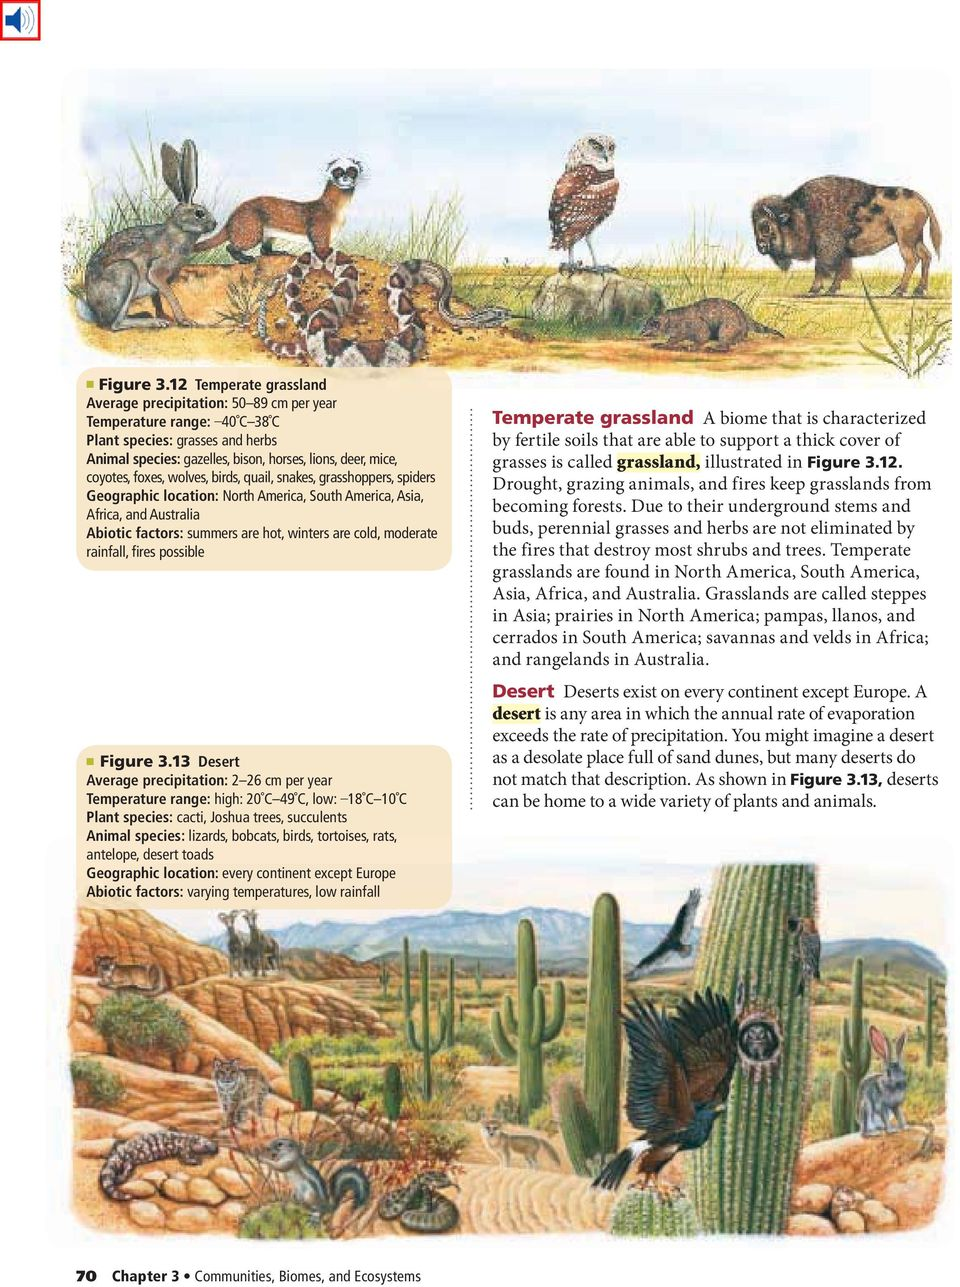 foxes, wolves, birds, quail, snakes, grasshoppers, spiders Geographic location: North America, South America, Asia, Africa, and Australia Abiotic factors: summers are hot, winters are cold, moderate